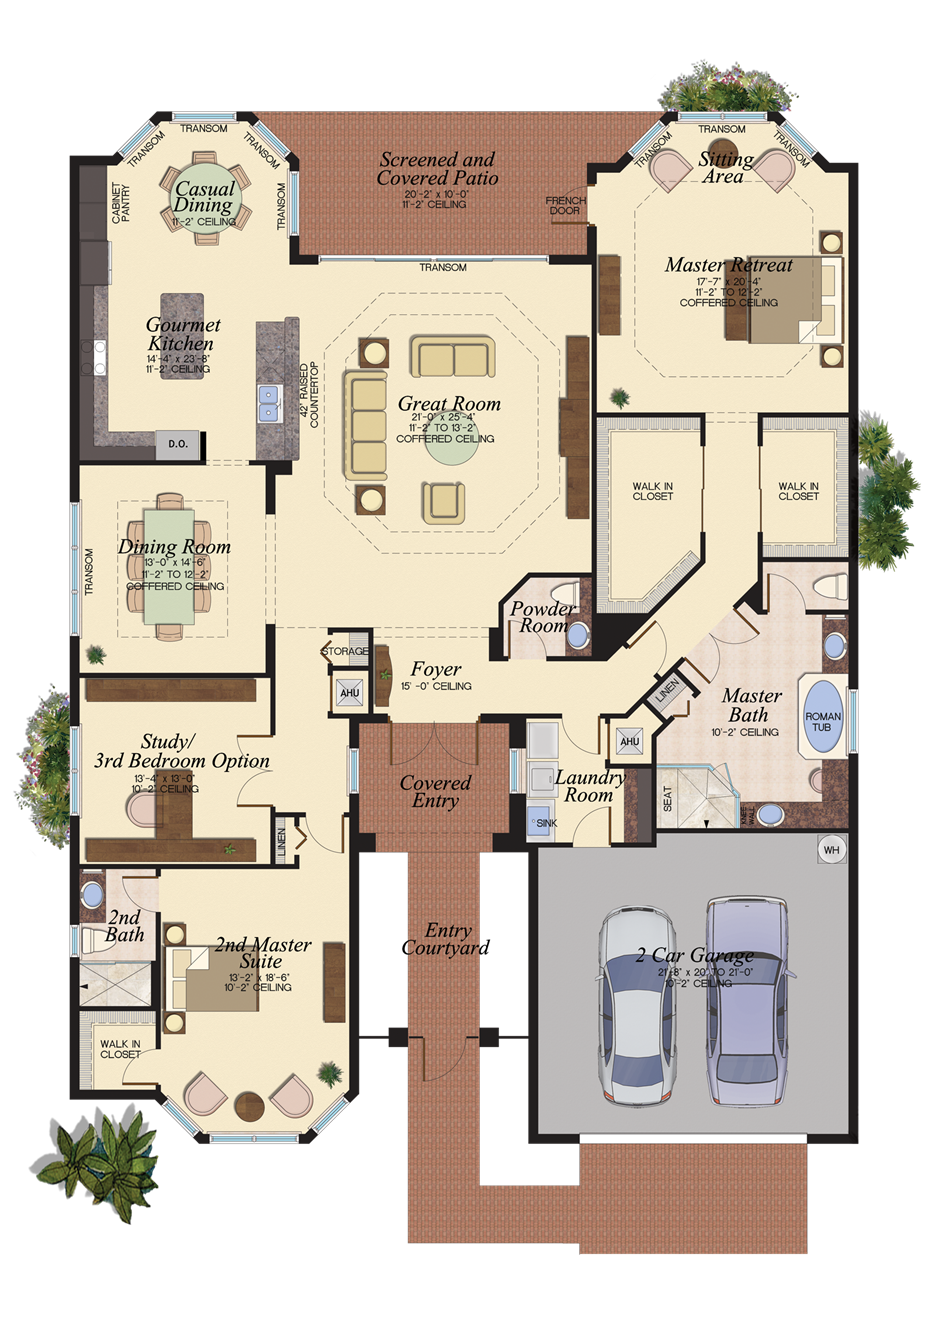 Pamplona Fp Png 935 1331 Building Plans House Home Design Floor Plans House Layout Plans